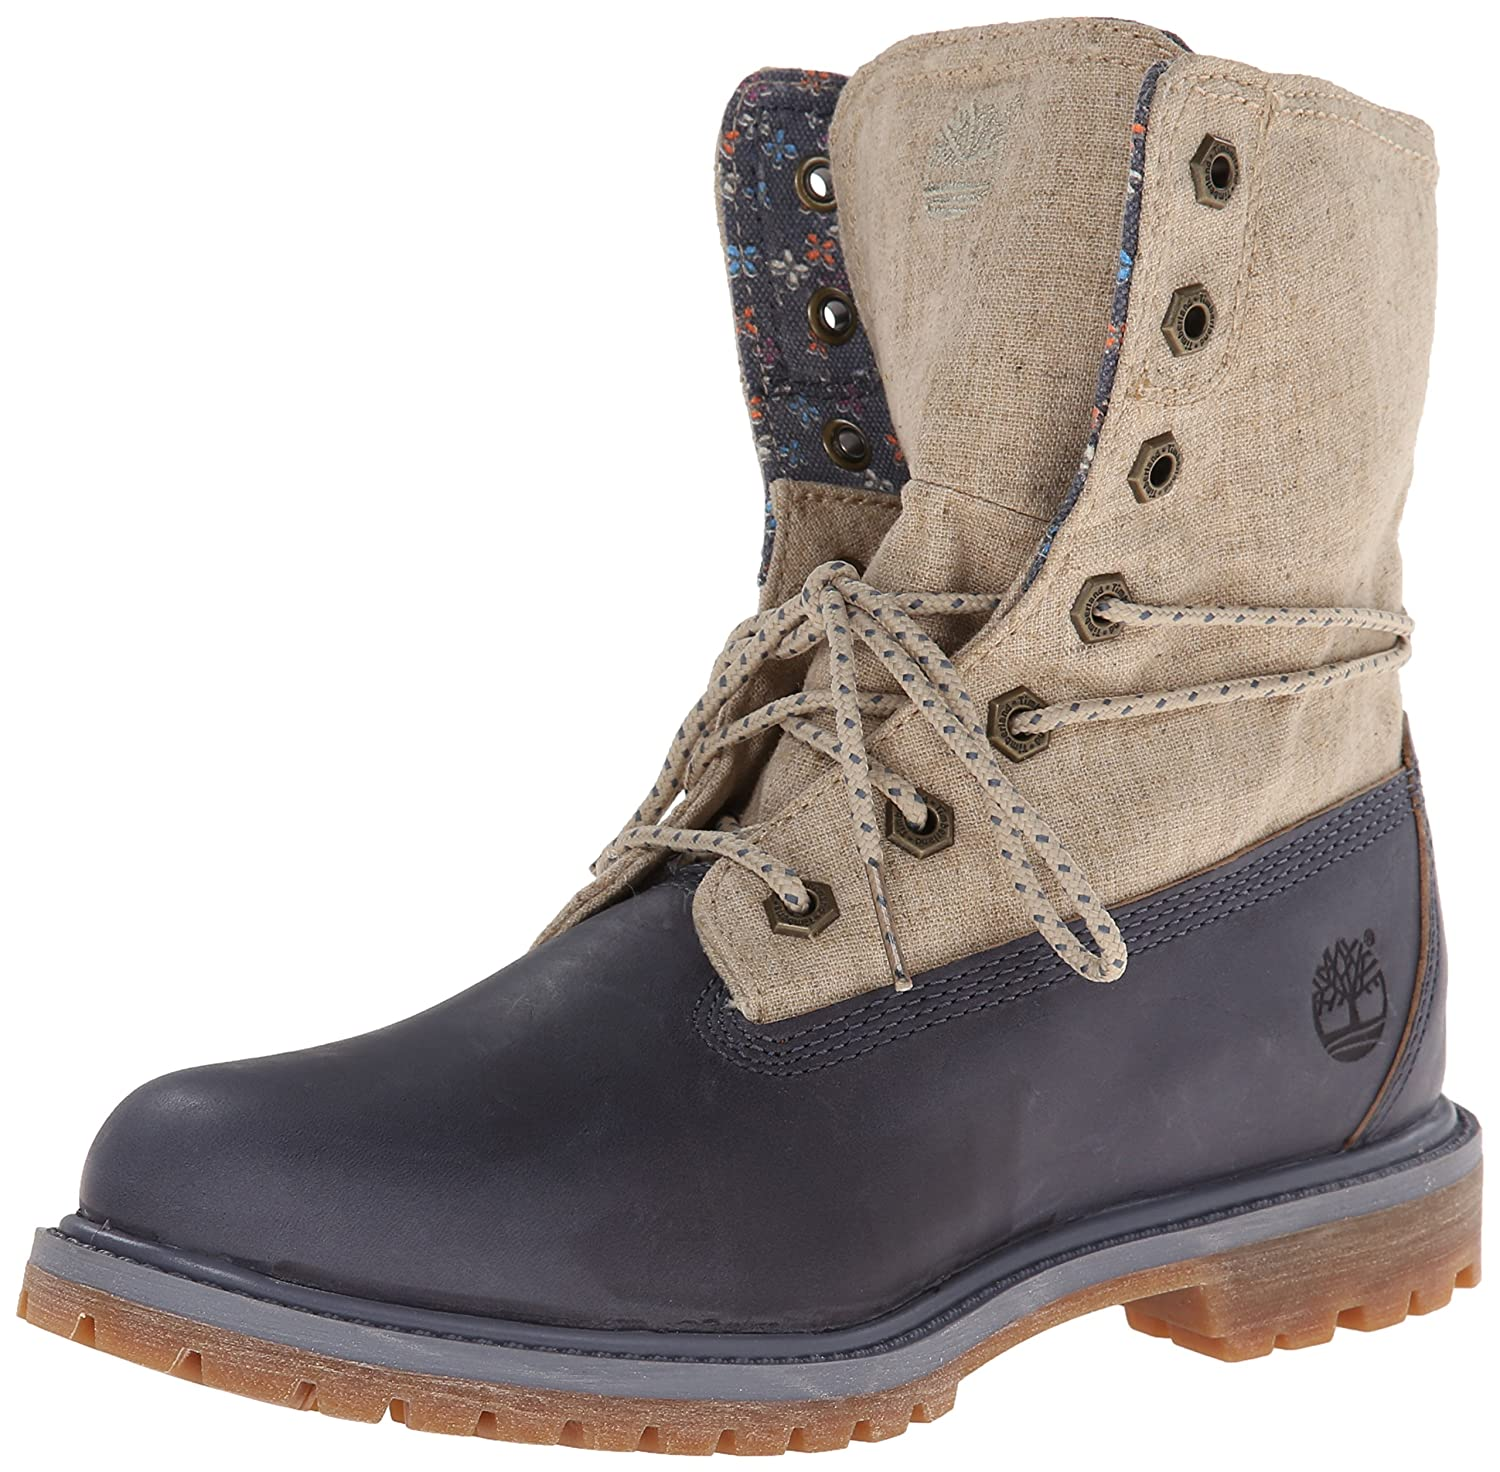 Timberland Folding Sko Amazon ztZsD